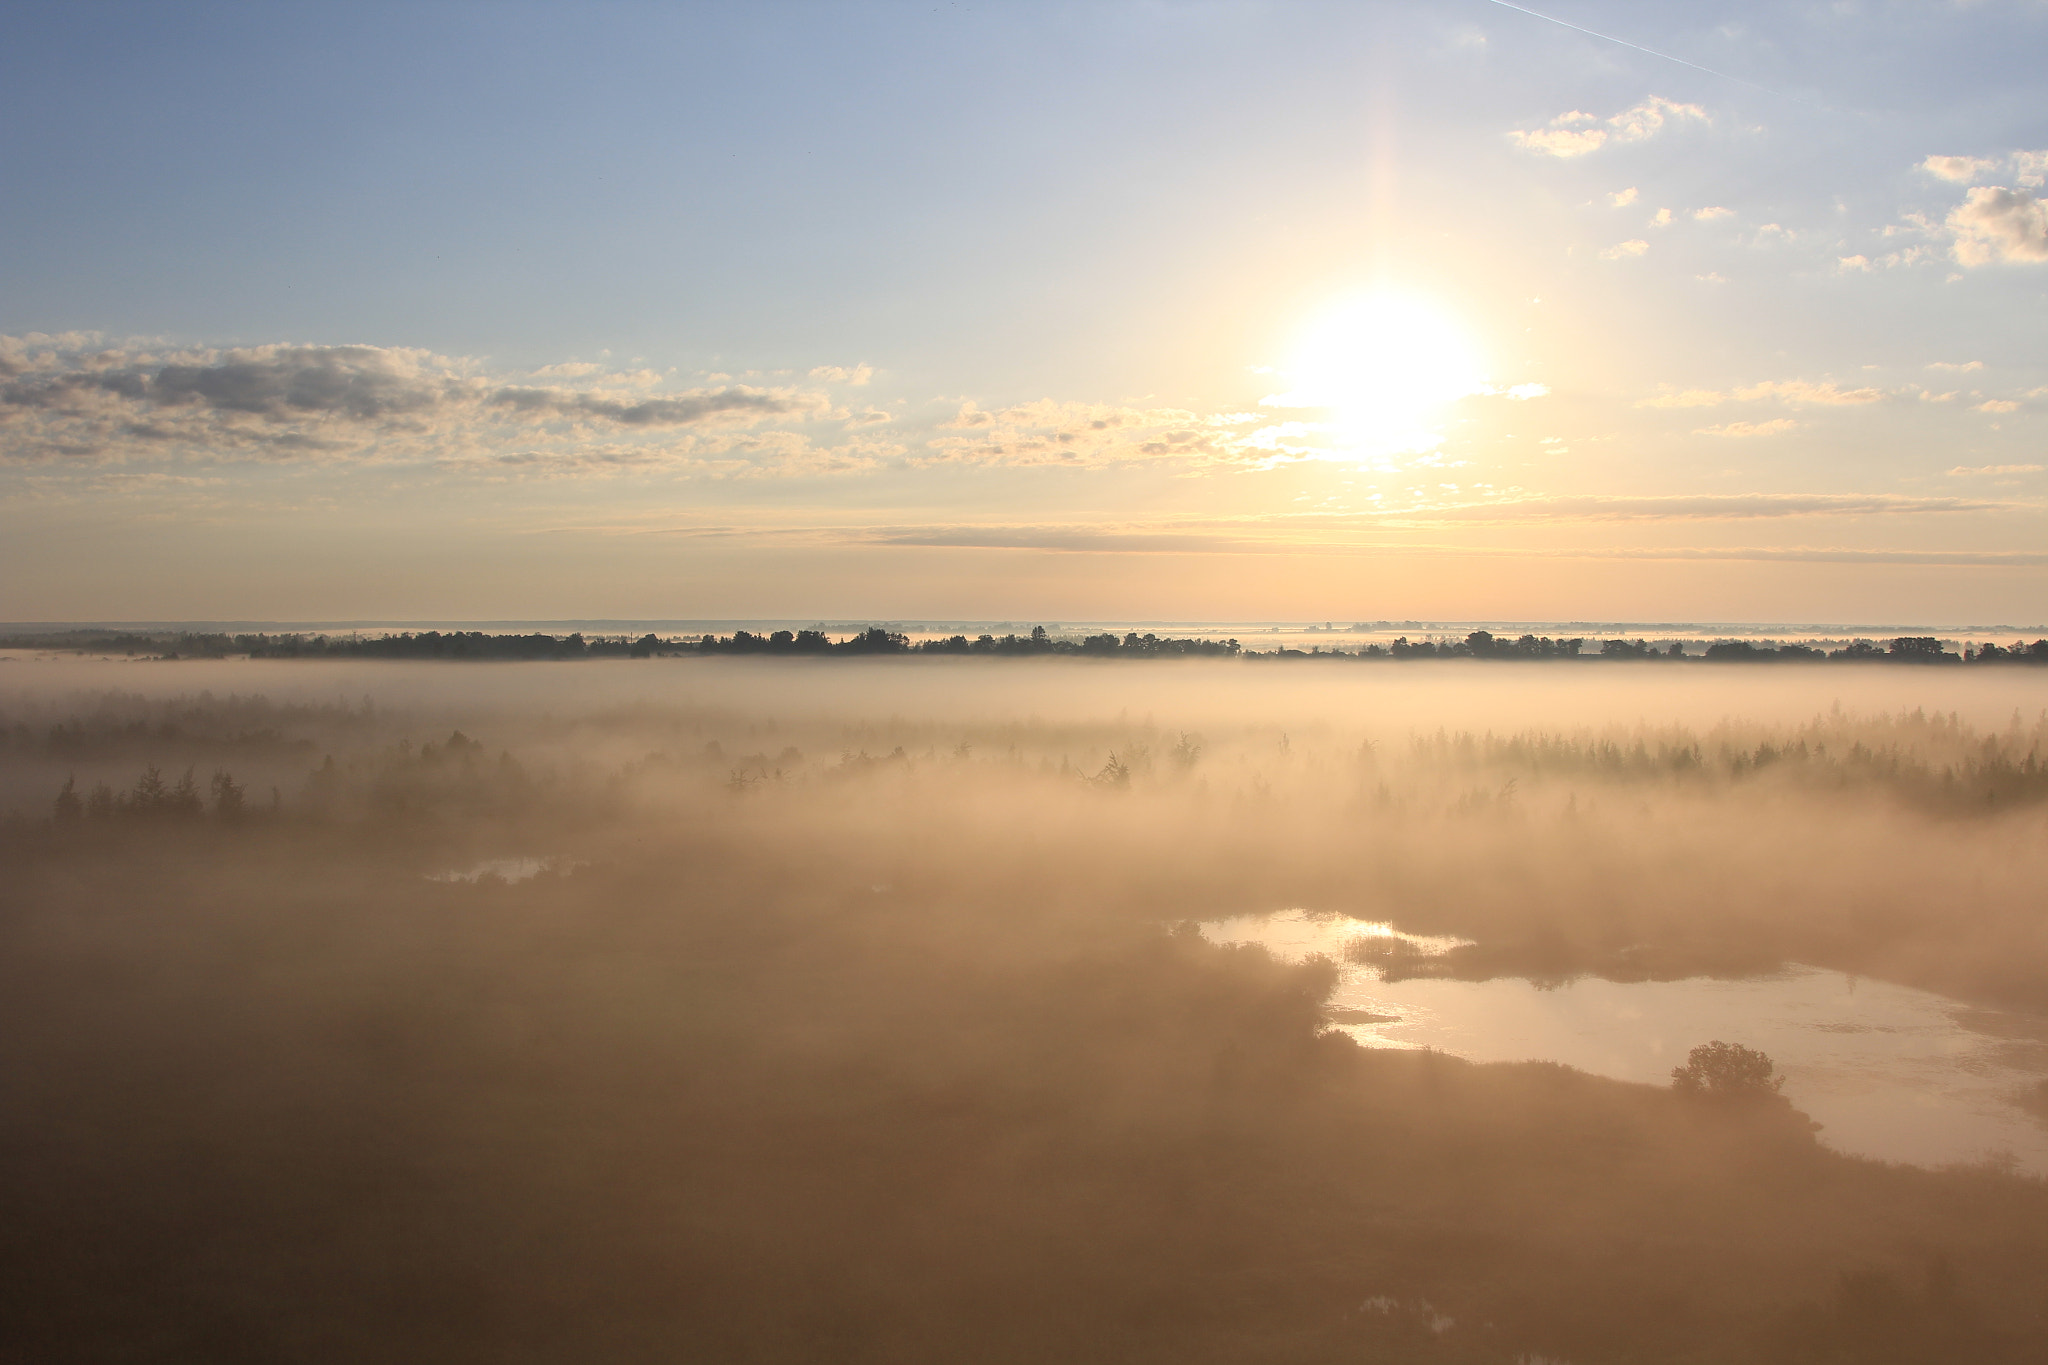 Photograph morning from balloon by Alexander Chernov on 500px